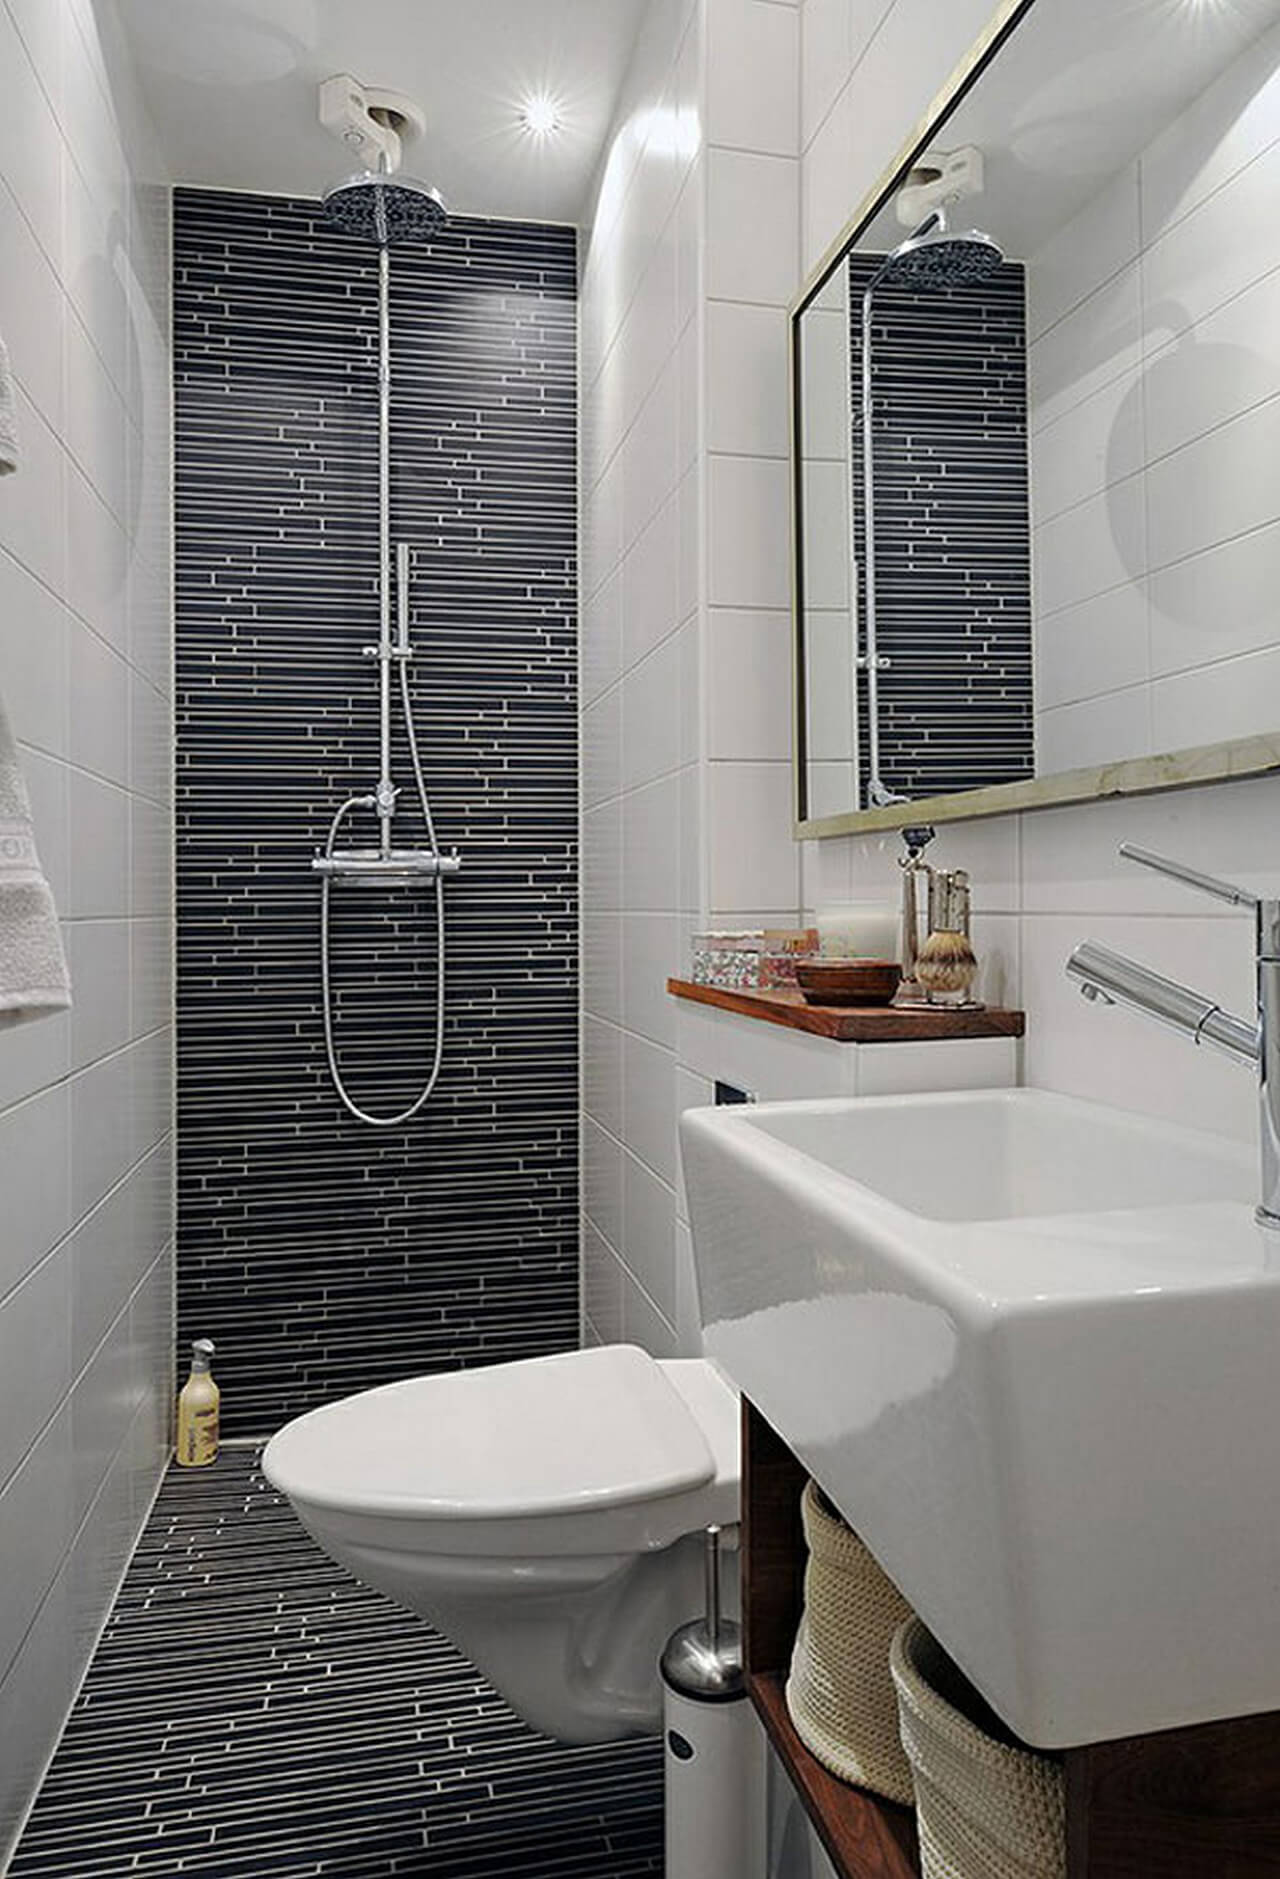 Curtain Free Wet Room With Modern Tiles